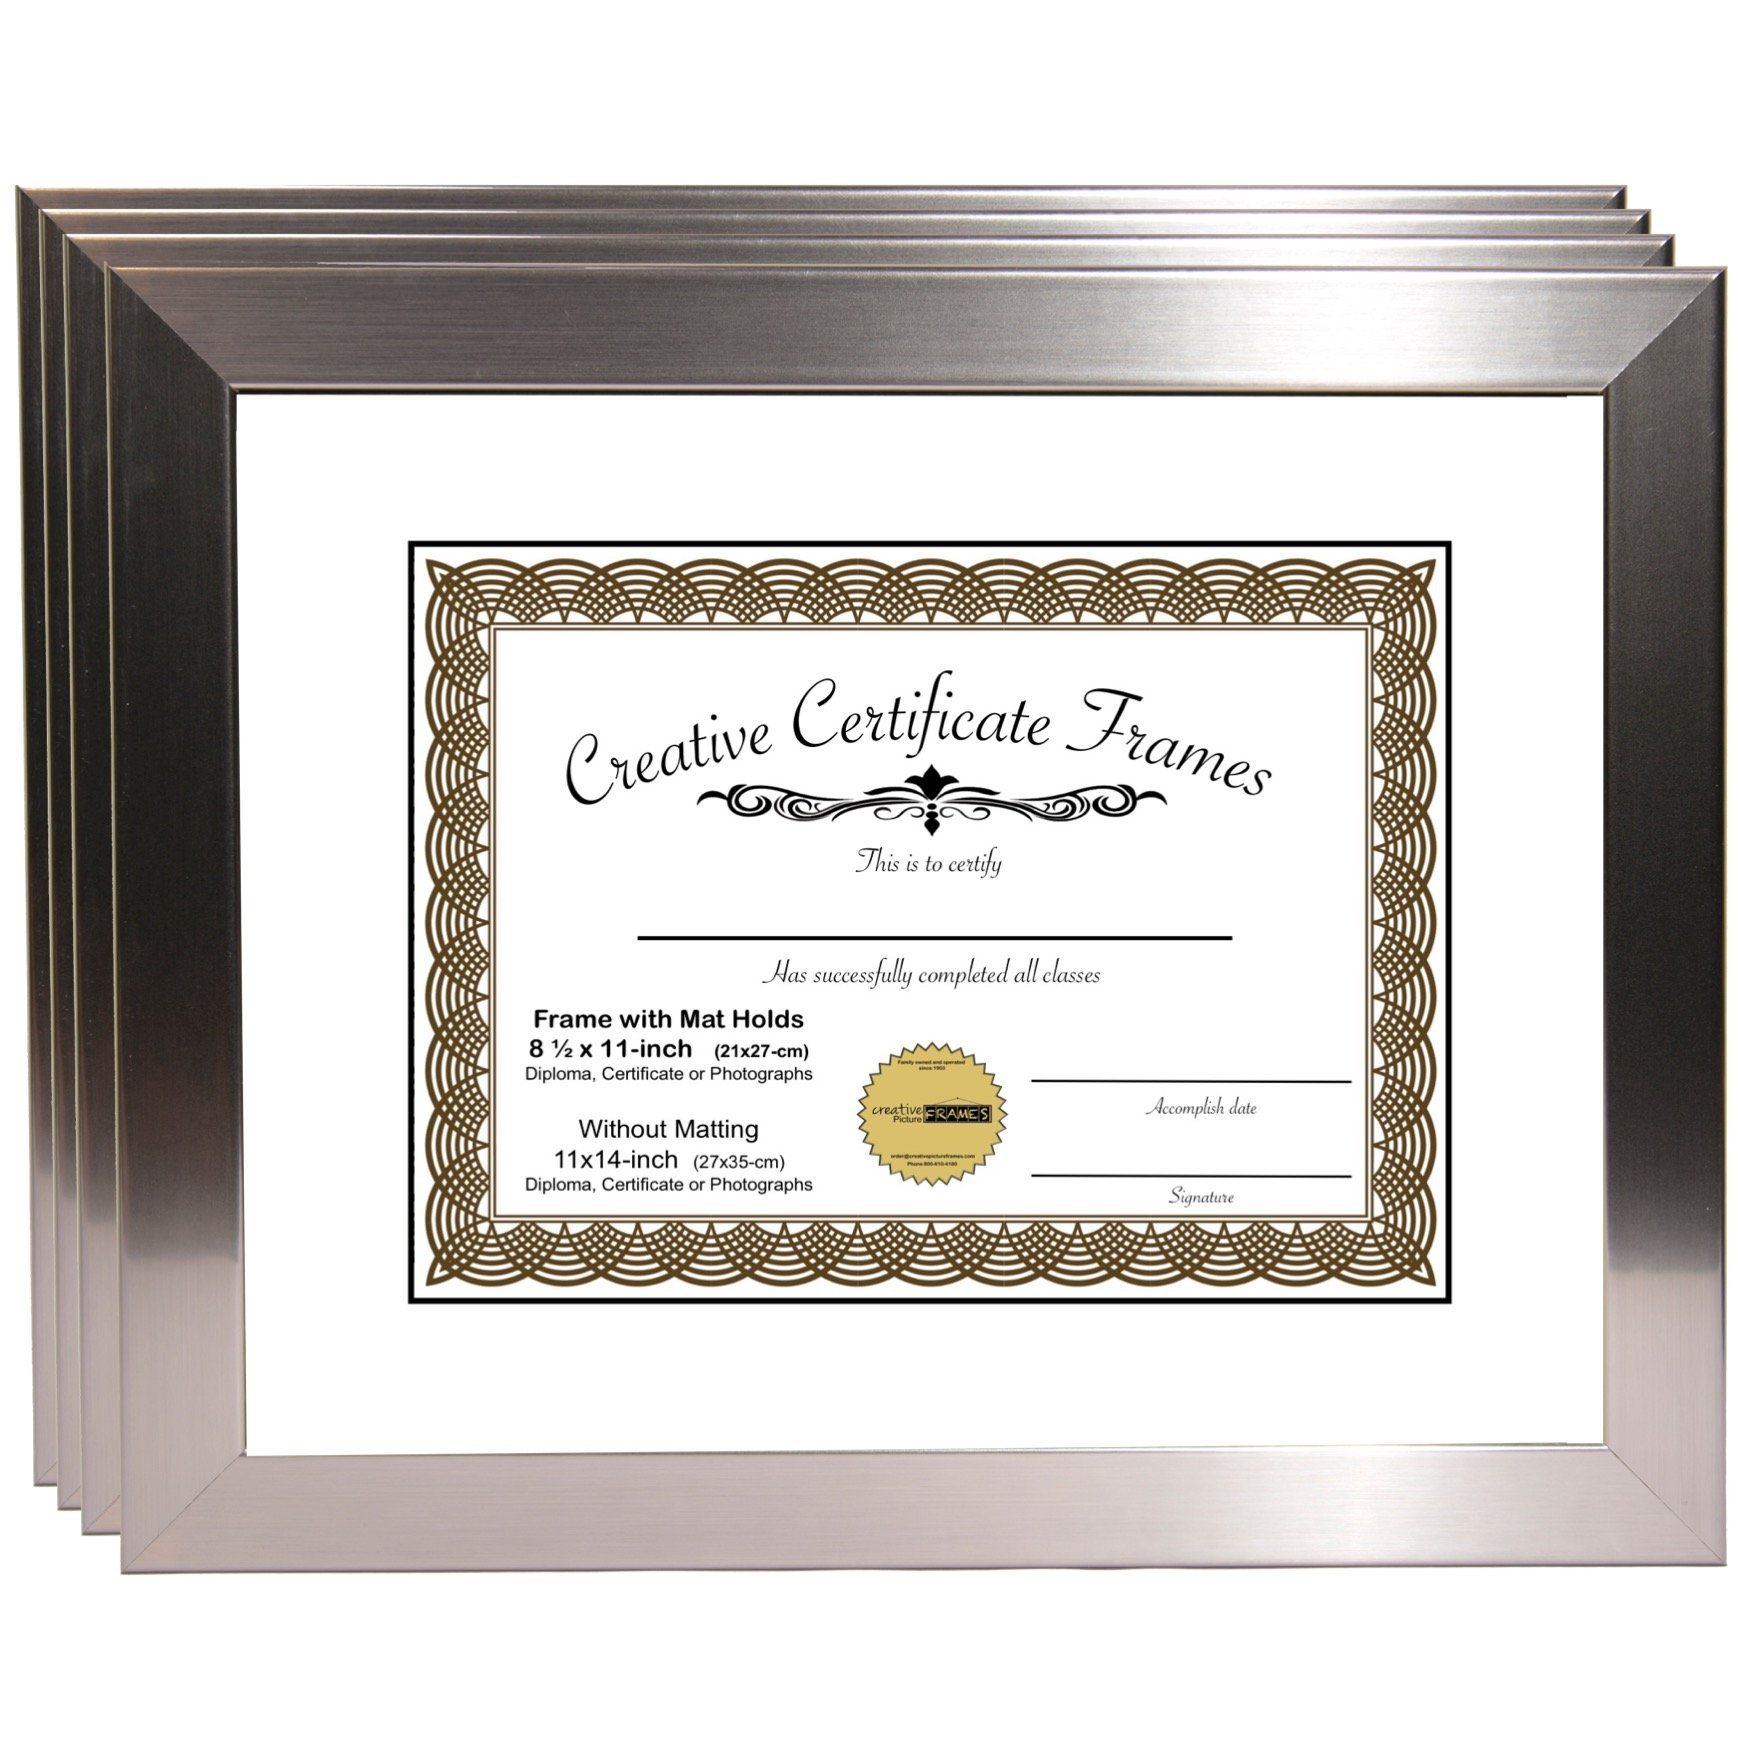 CreativePF [Y8SH-11x14ss-w] Stainless Steel Document Frame Displays 8.5'' by 11'' with Mat or 11'' by 14'' Certificate, Graduation, University, Diploma Frames with Stand & Wall Hanger (Pack of 4) by Creative Picture Frames